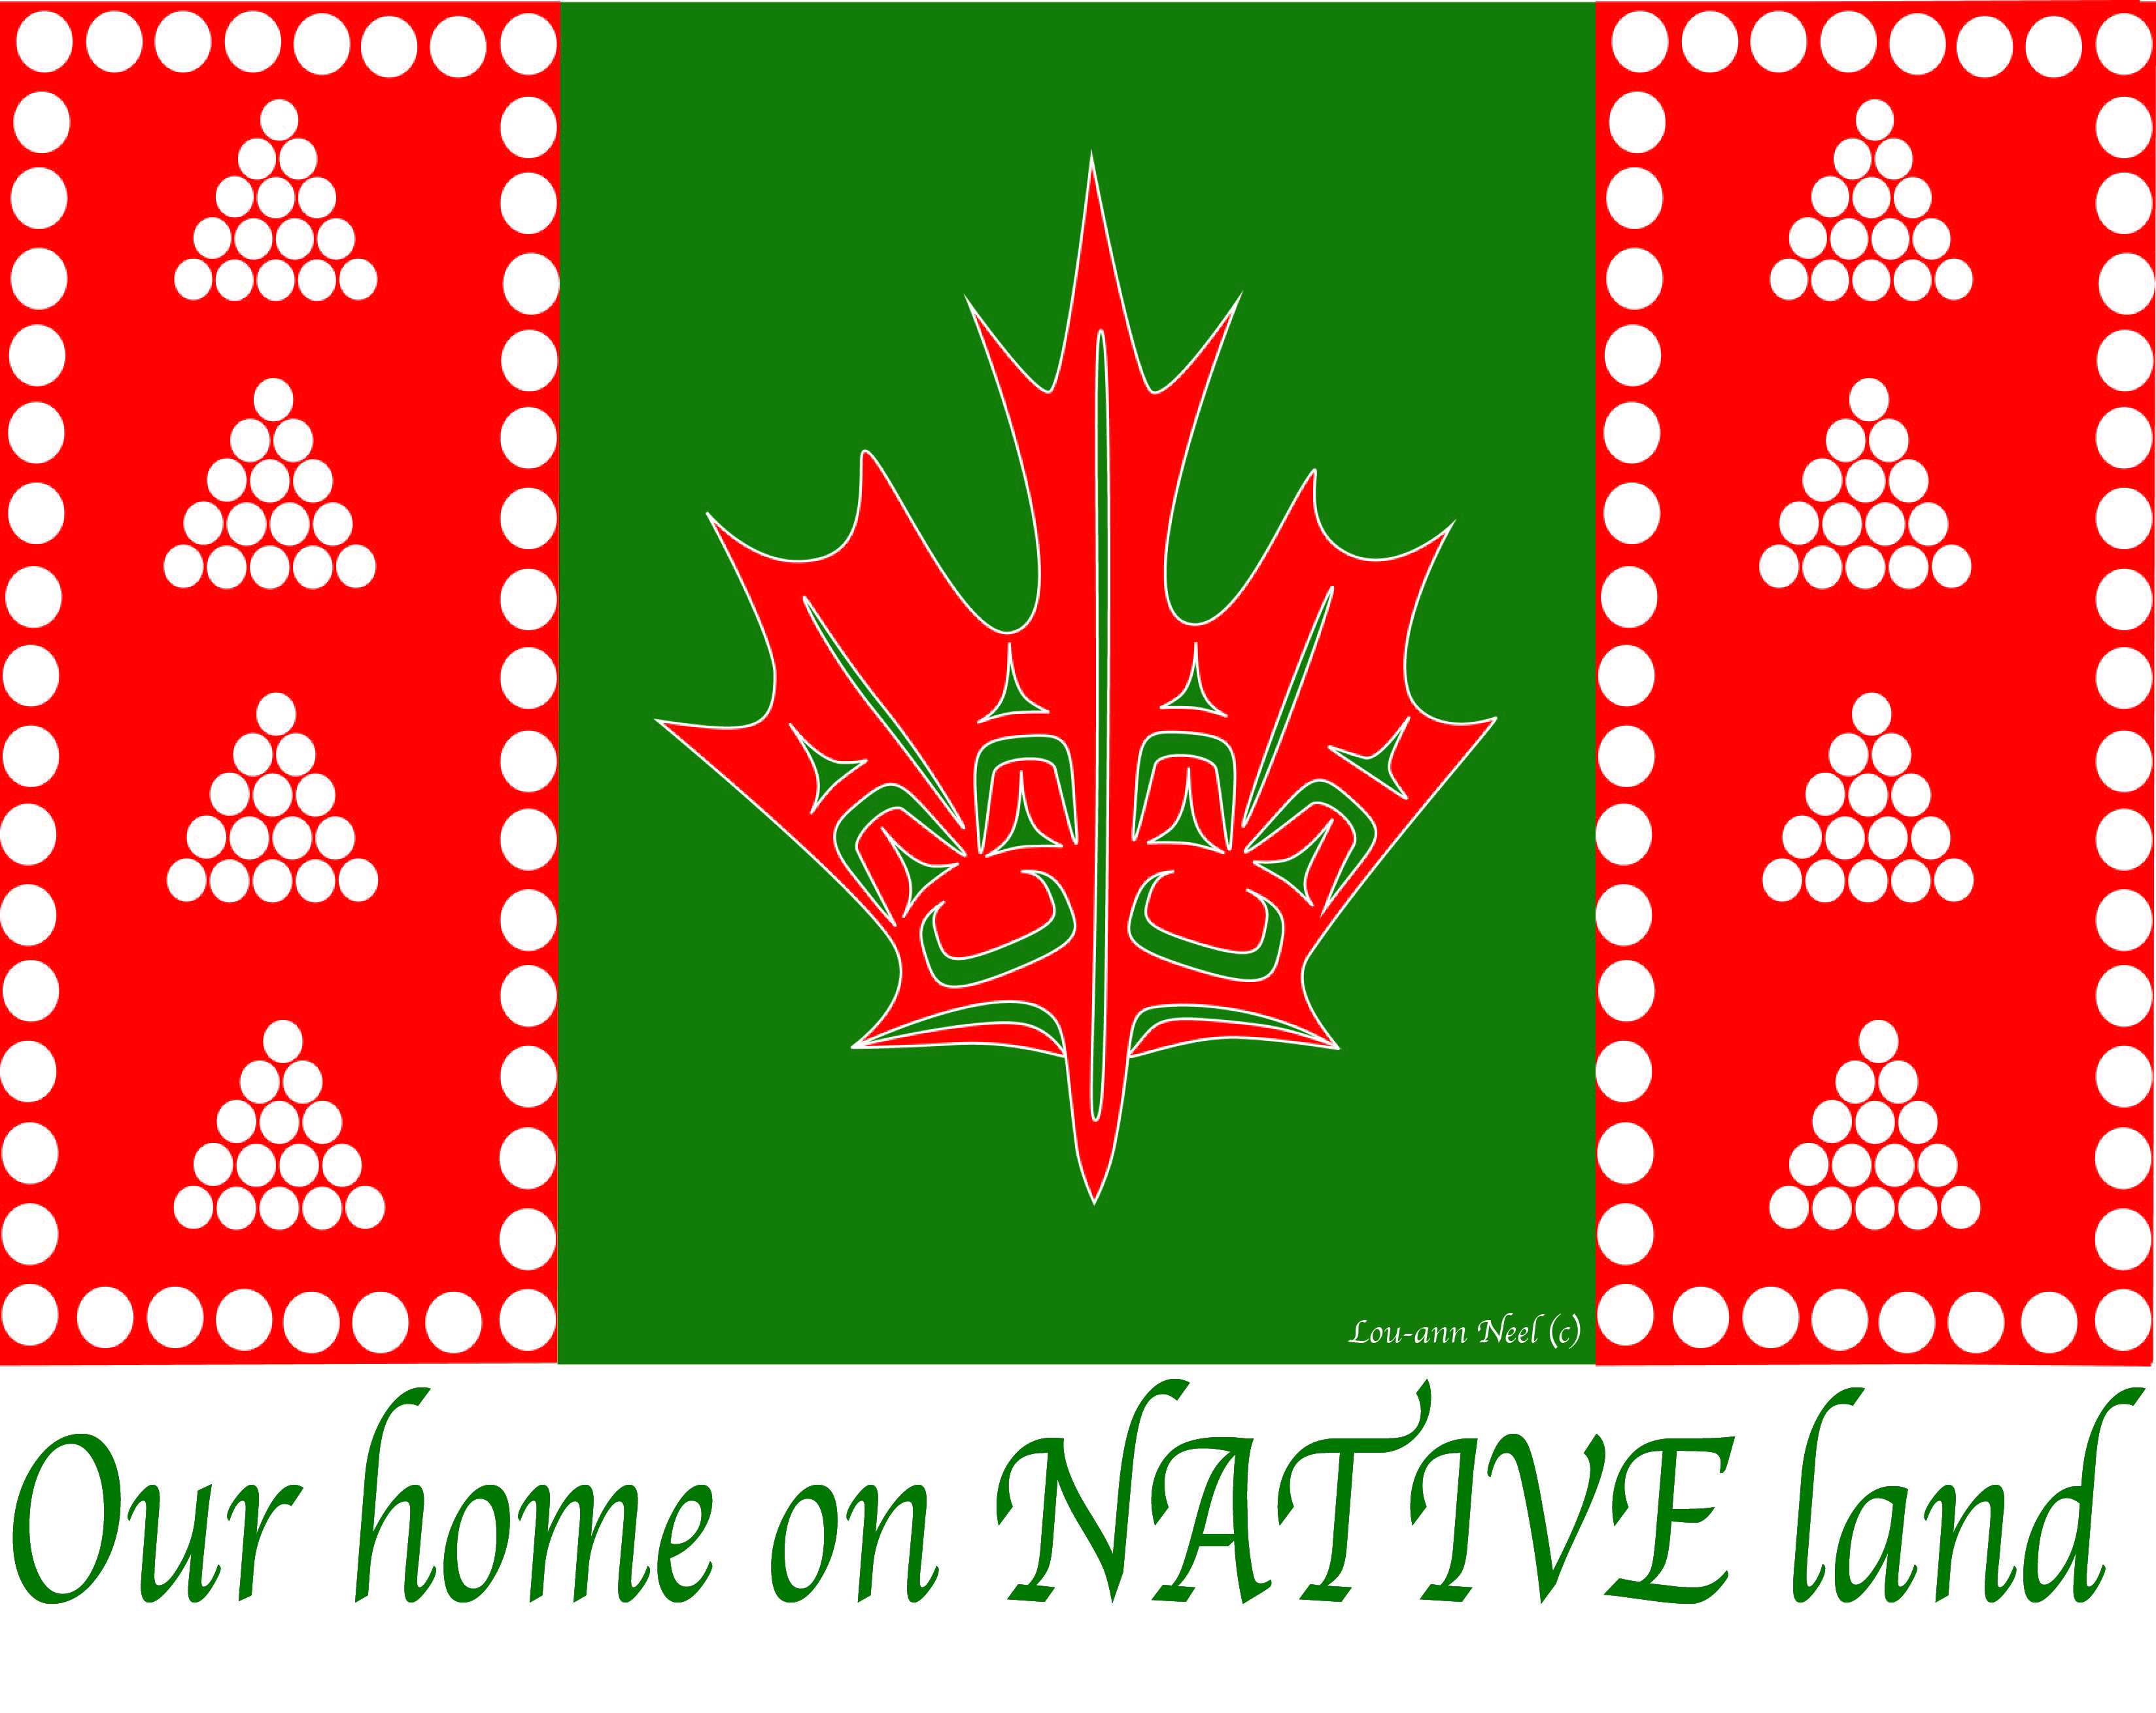 Our home on native land emily carr university our home on native land biocorpaavc Image collections